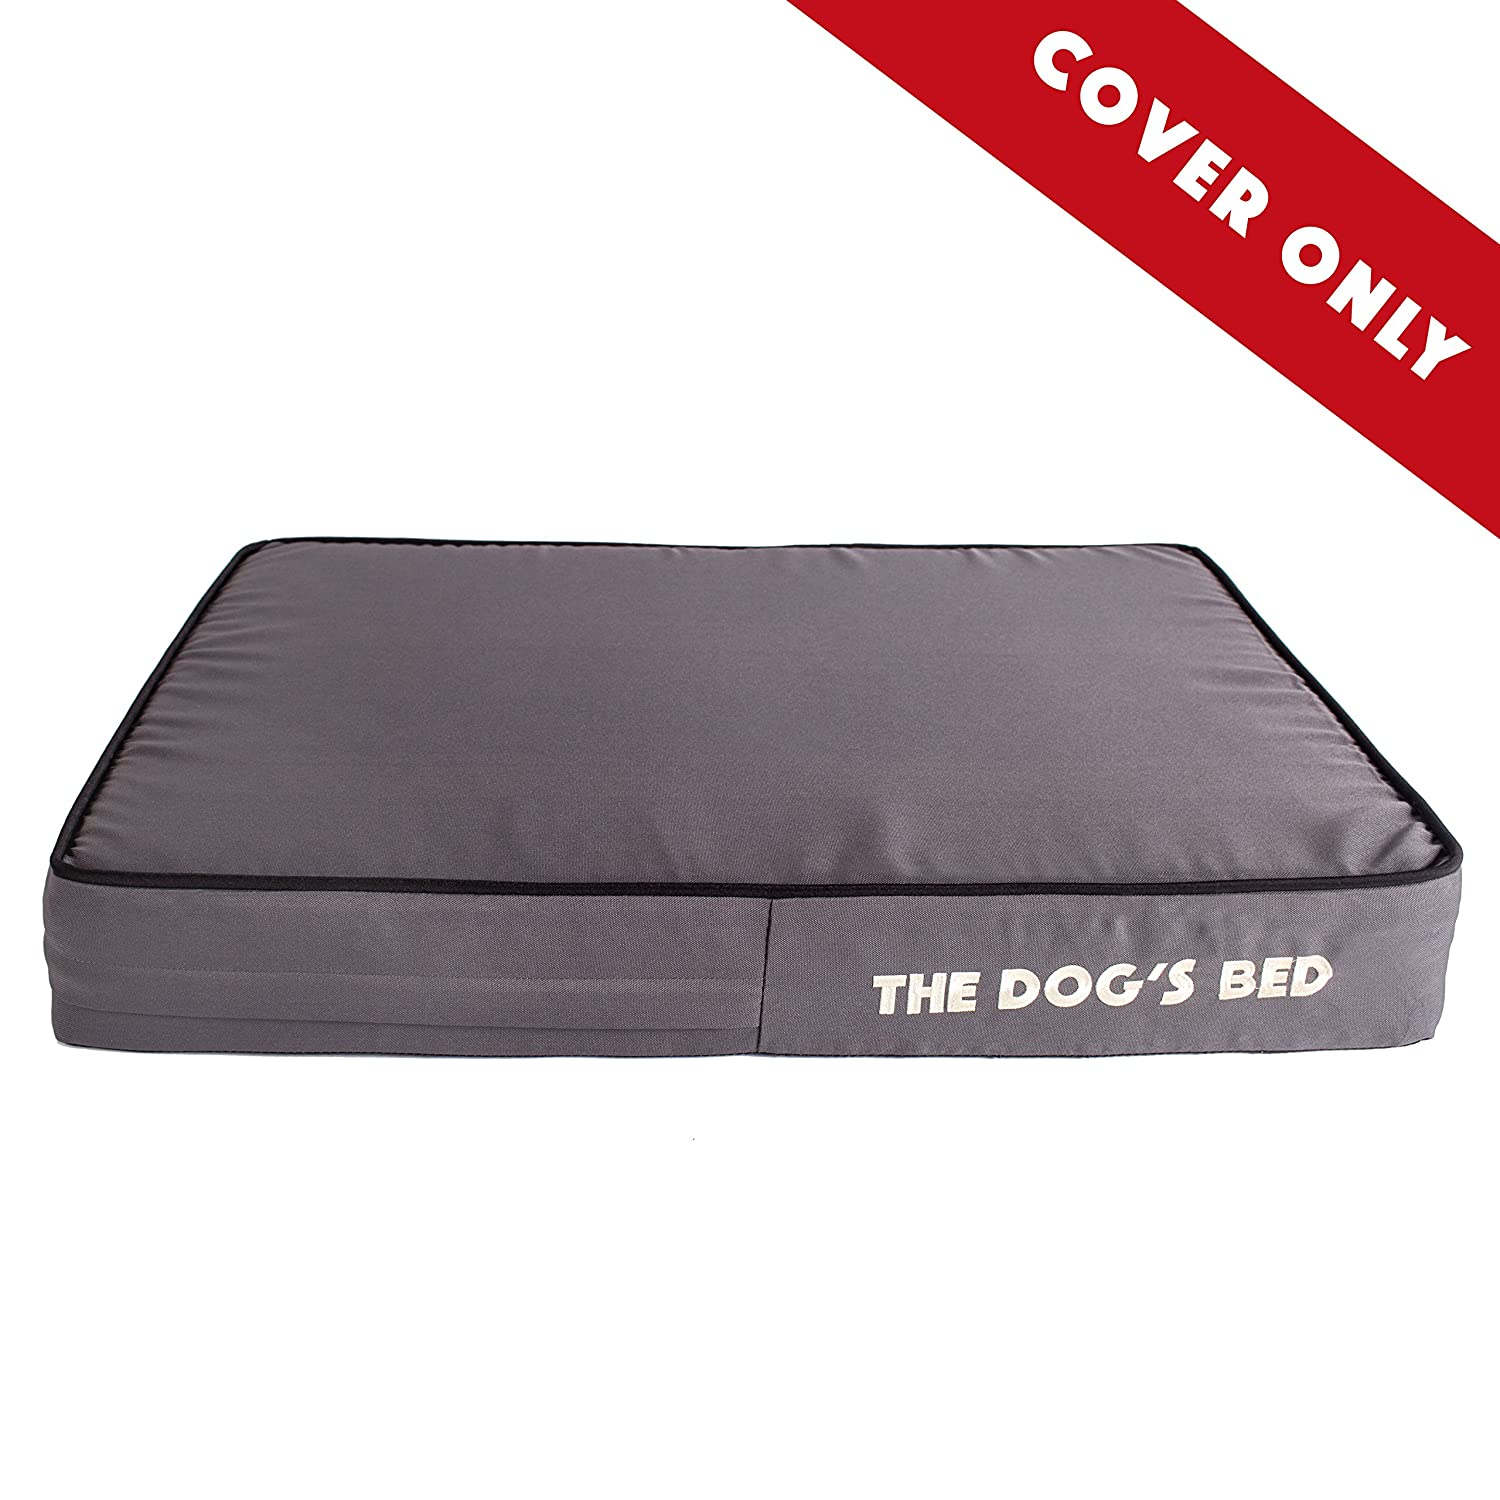 The Dog's Blanket, Premium Quality Dog Blanket in Brown, Reversible, Soft Microfiber Luxury for your Dog or Puppy to Enjoy The Dog' s Blanket Red Kite Store